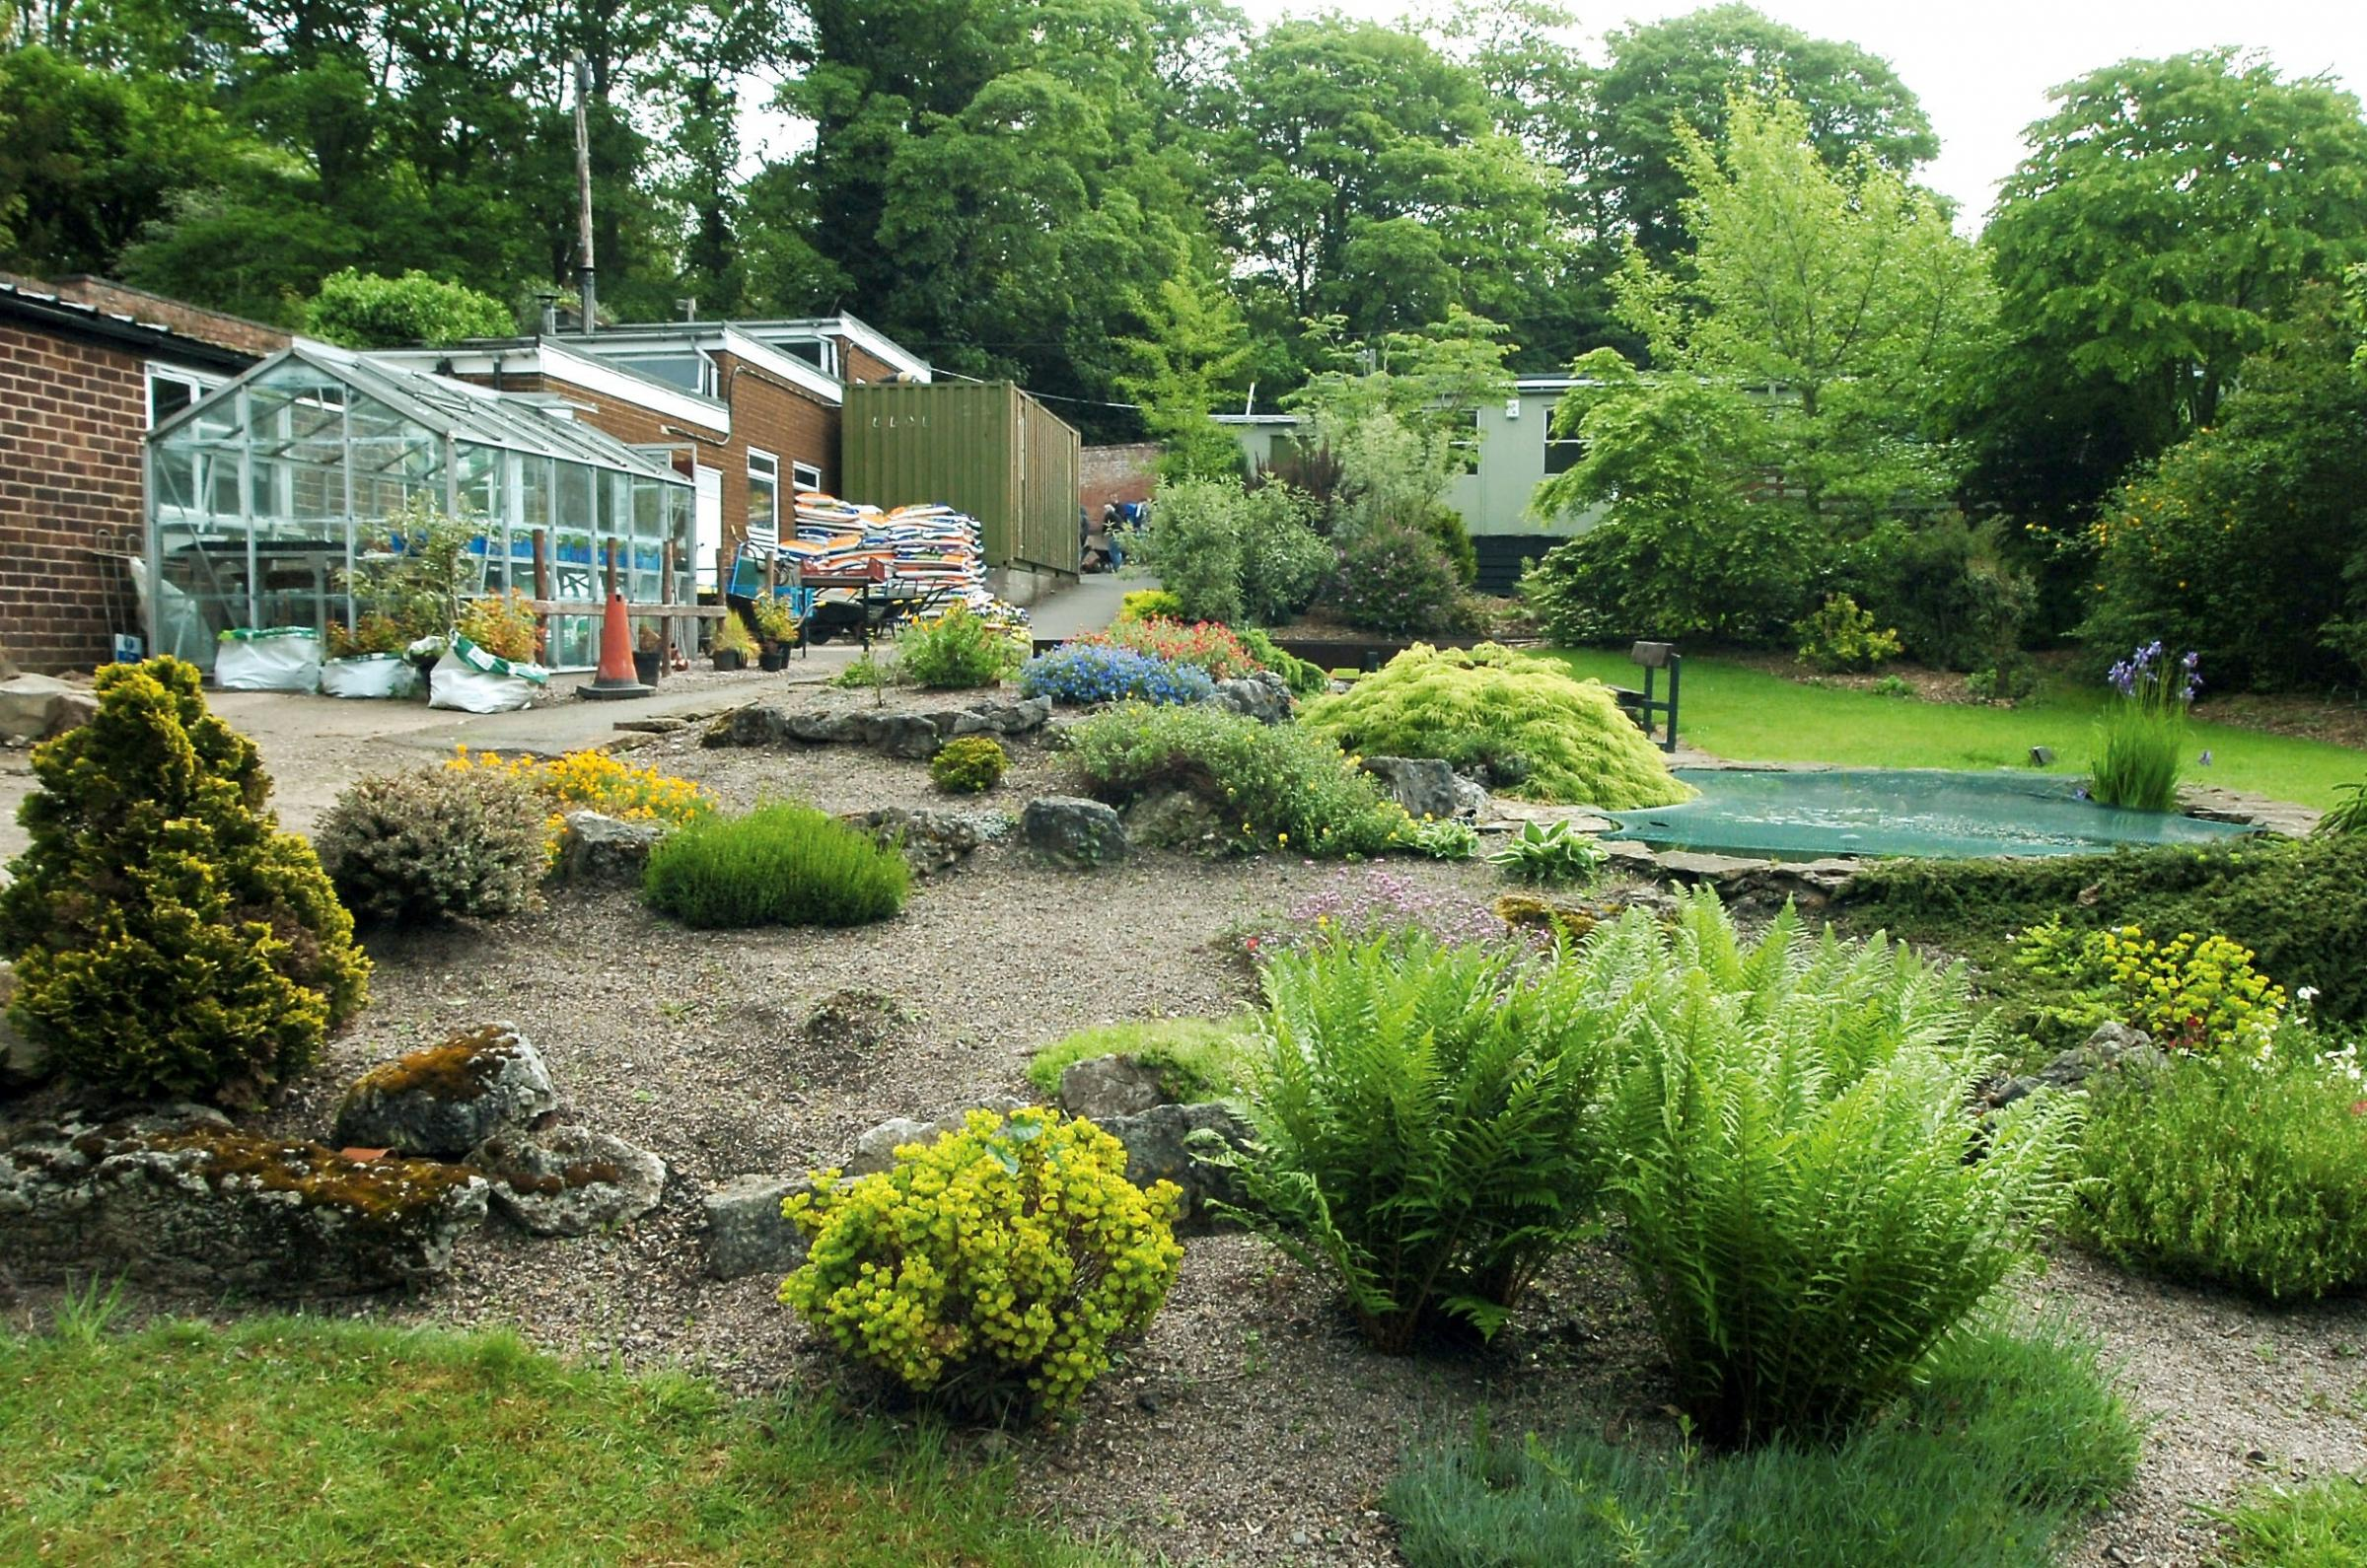 Leasowes walled garden set to return to former glory